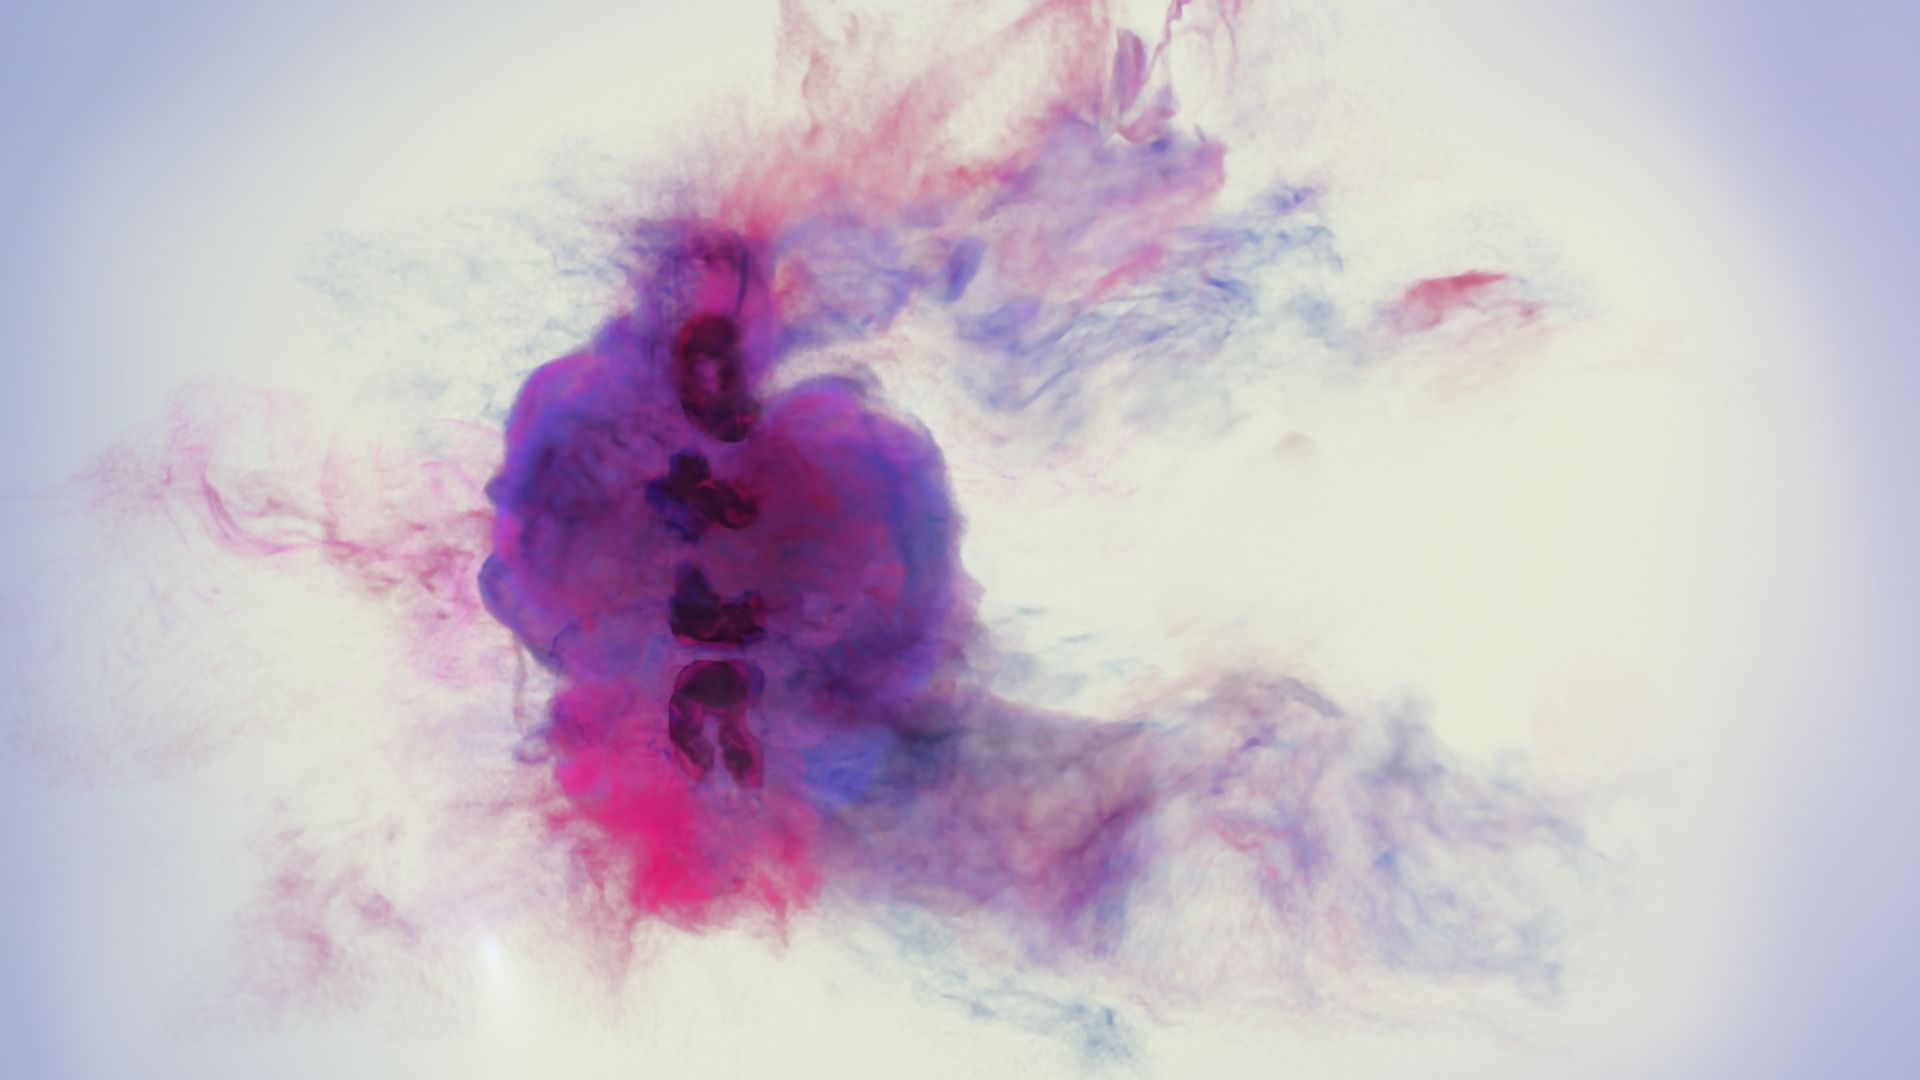 Le facteur-robot anti-pollution